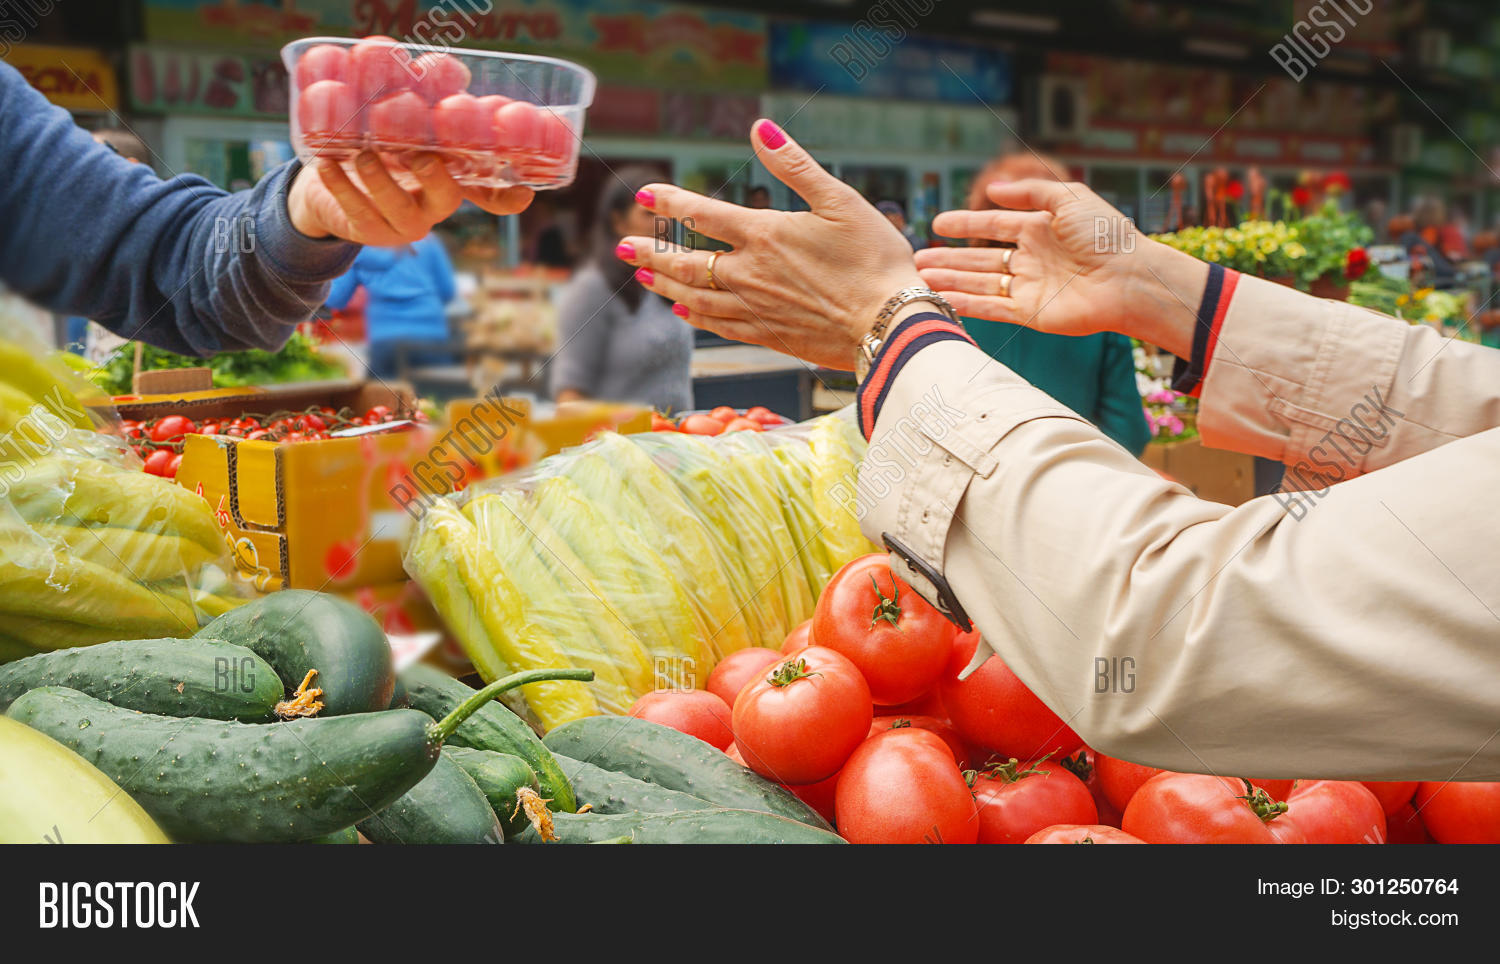 Woman Buying Fresh And Organic Fruits And Vegetables At The Green Market Or Farmer Agricultural Mark